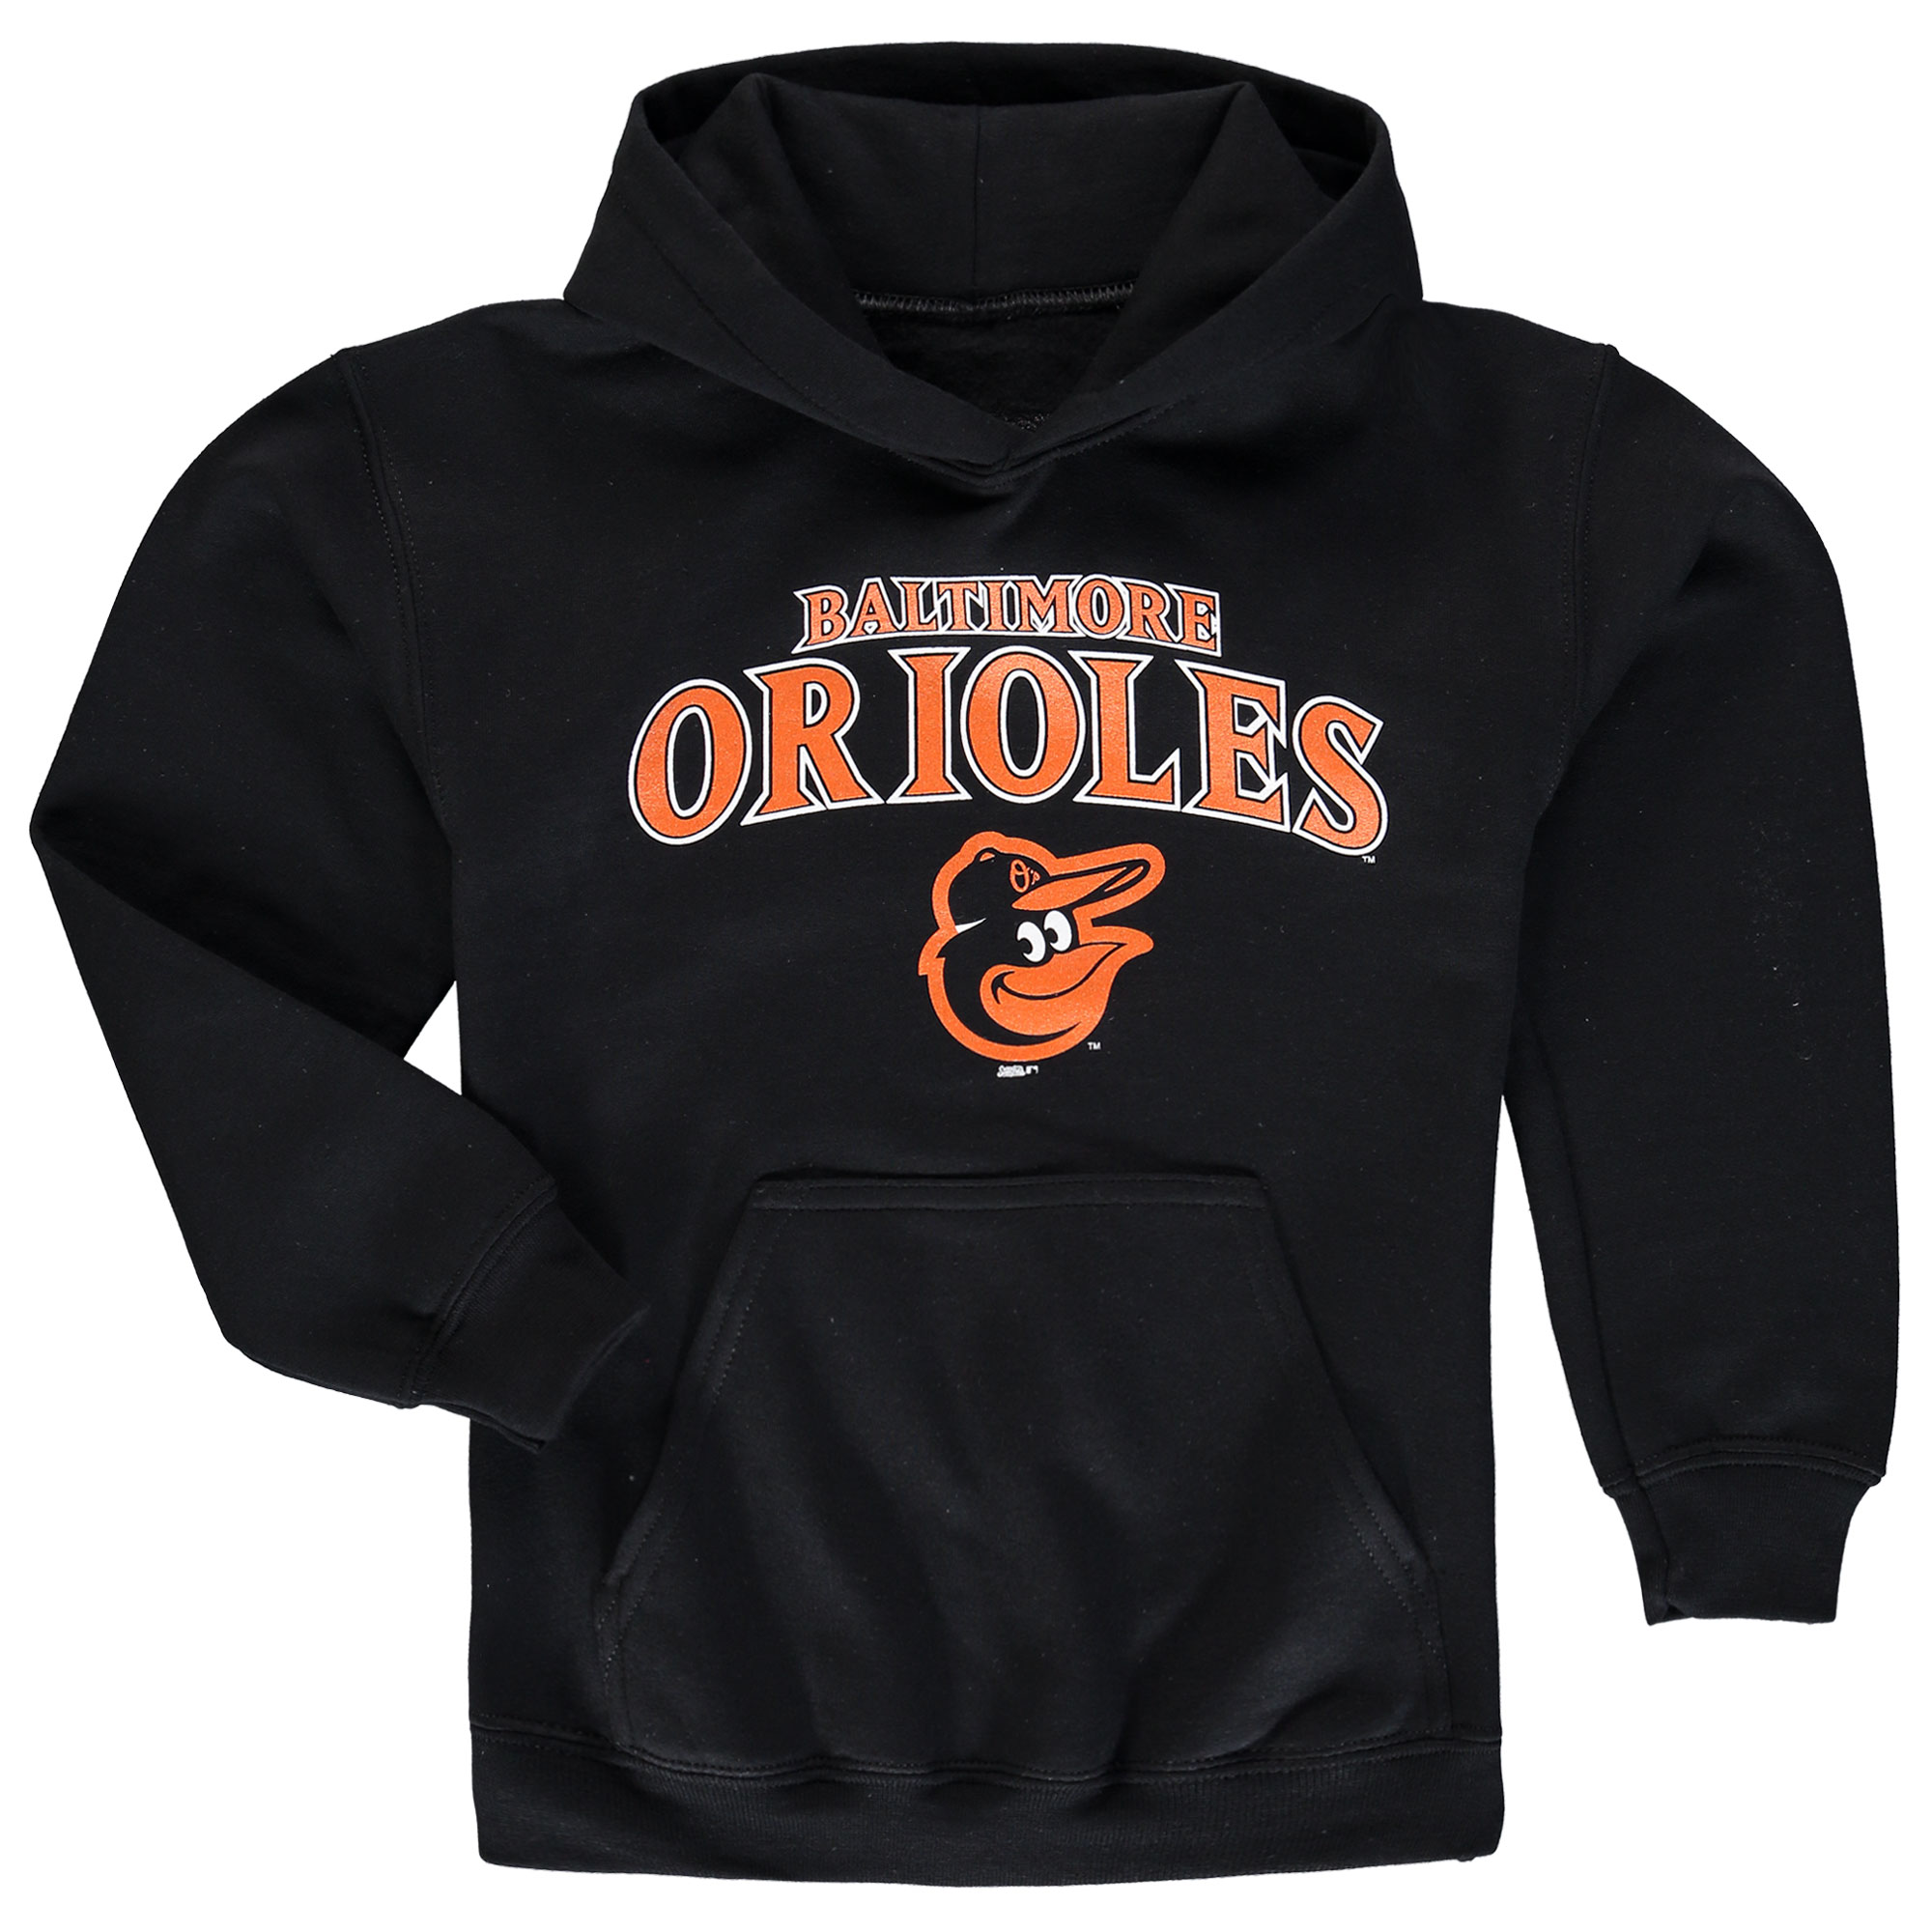 Baltimore Orioles Stitches Youth Team Fleece Pullover Hoodie - Black